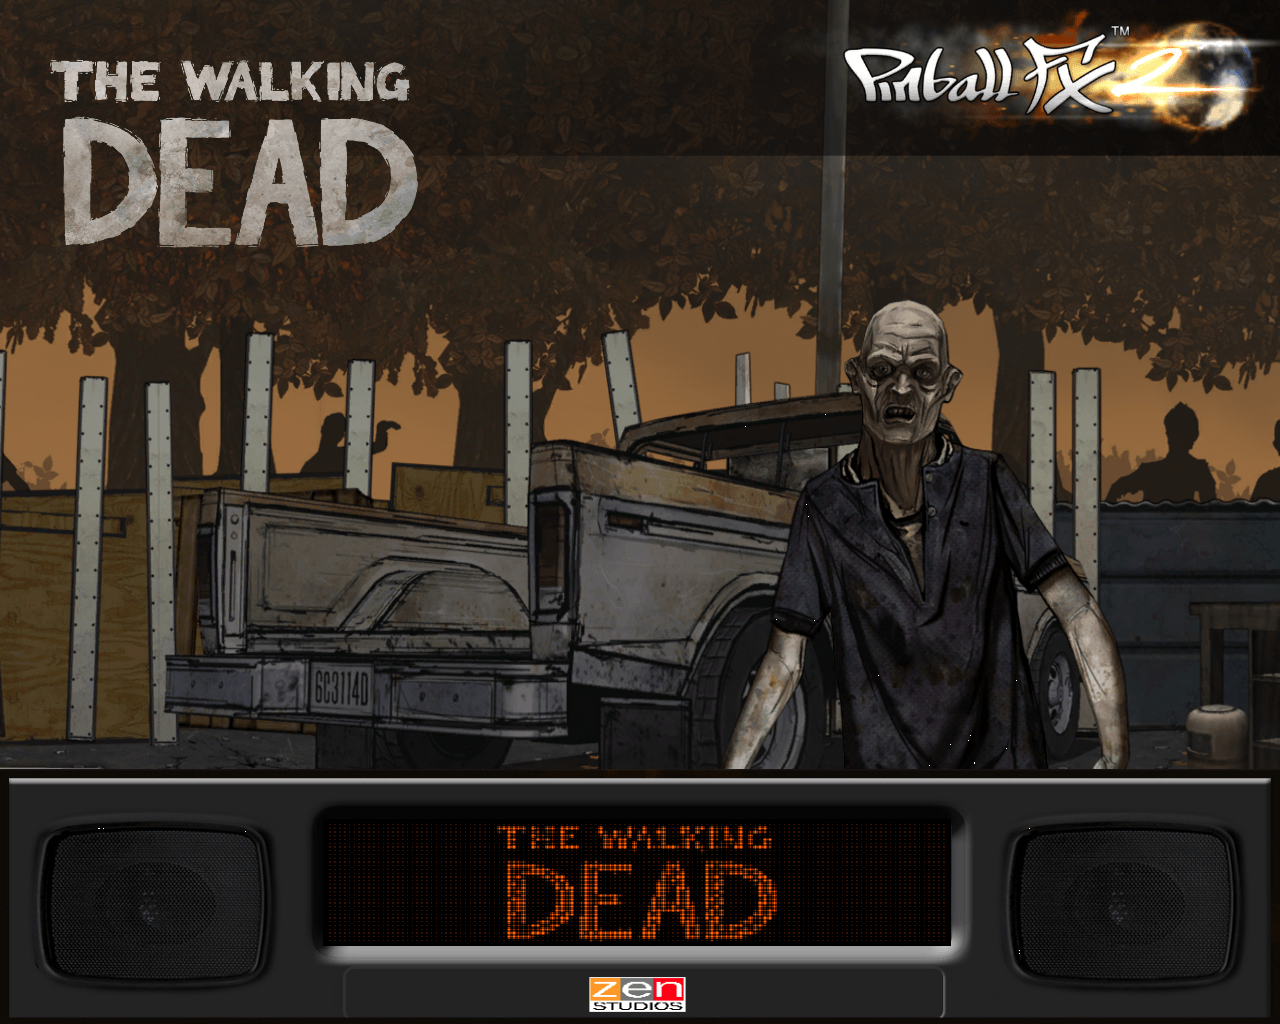 Walking Dead, The.png